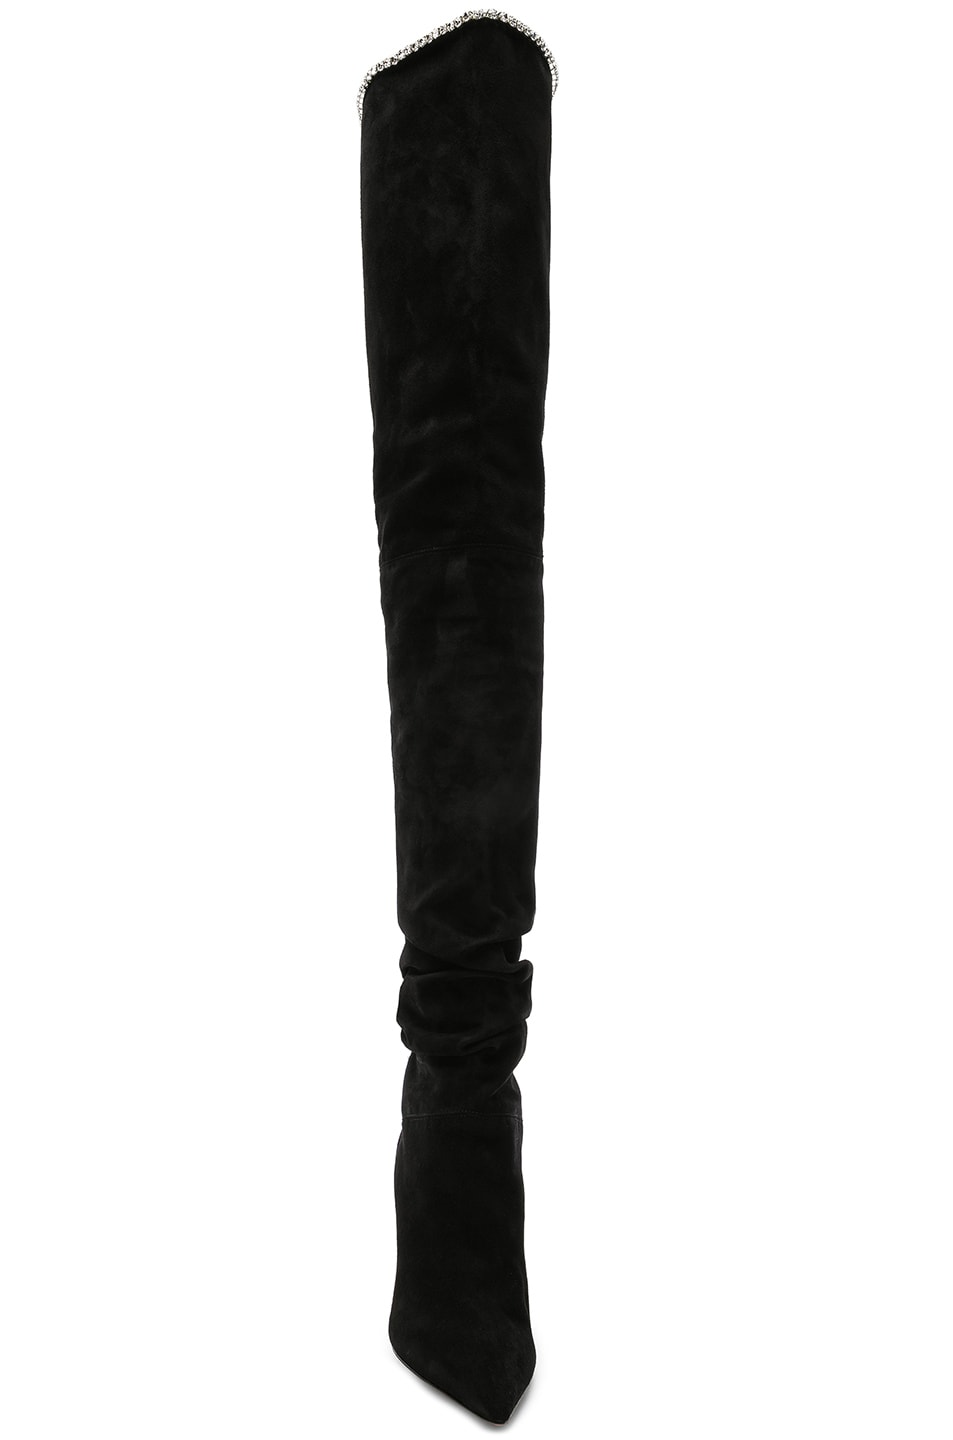 Image 4 of AMINA MUADDI Suede Barbara Thigh High Boots in Black & Crystals